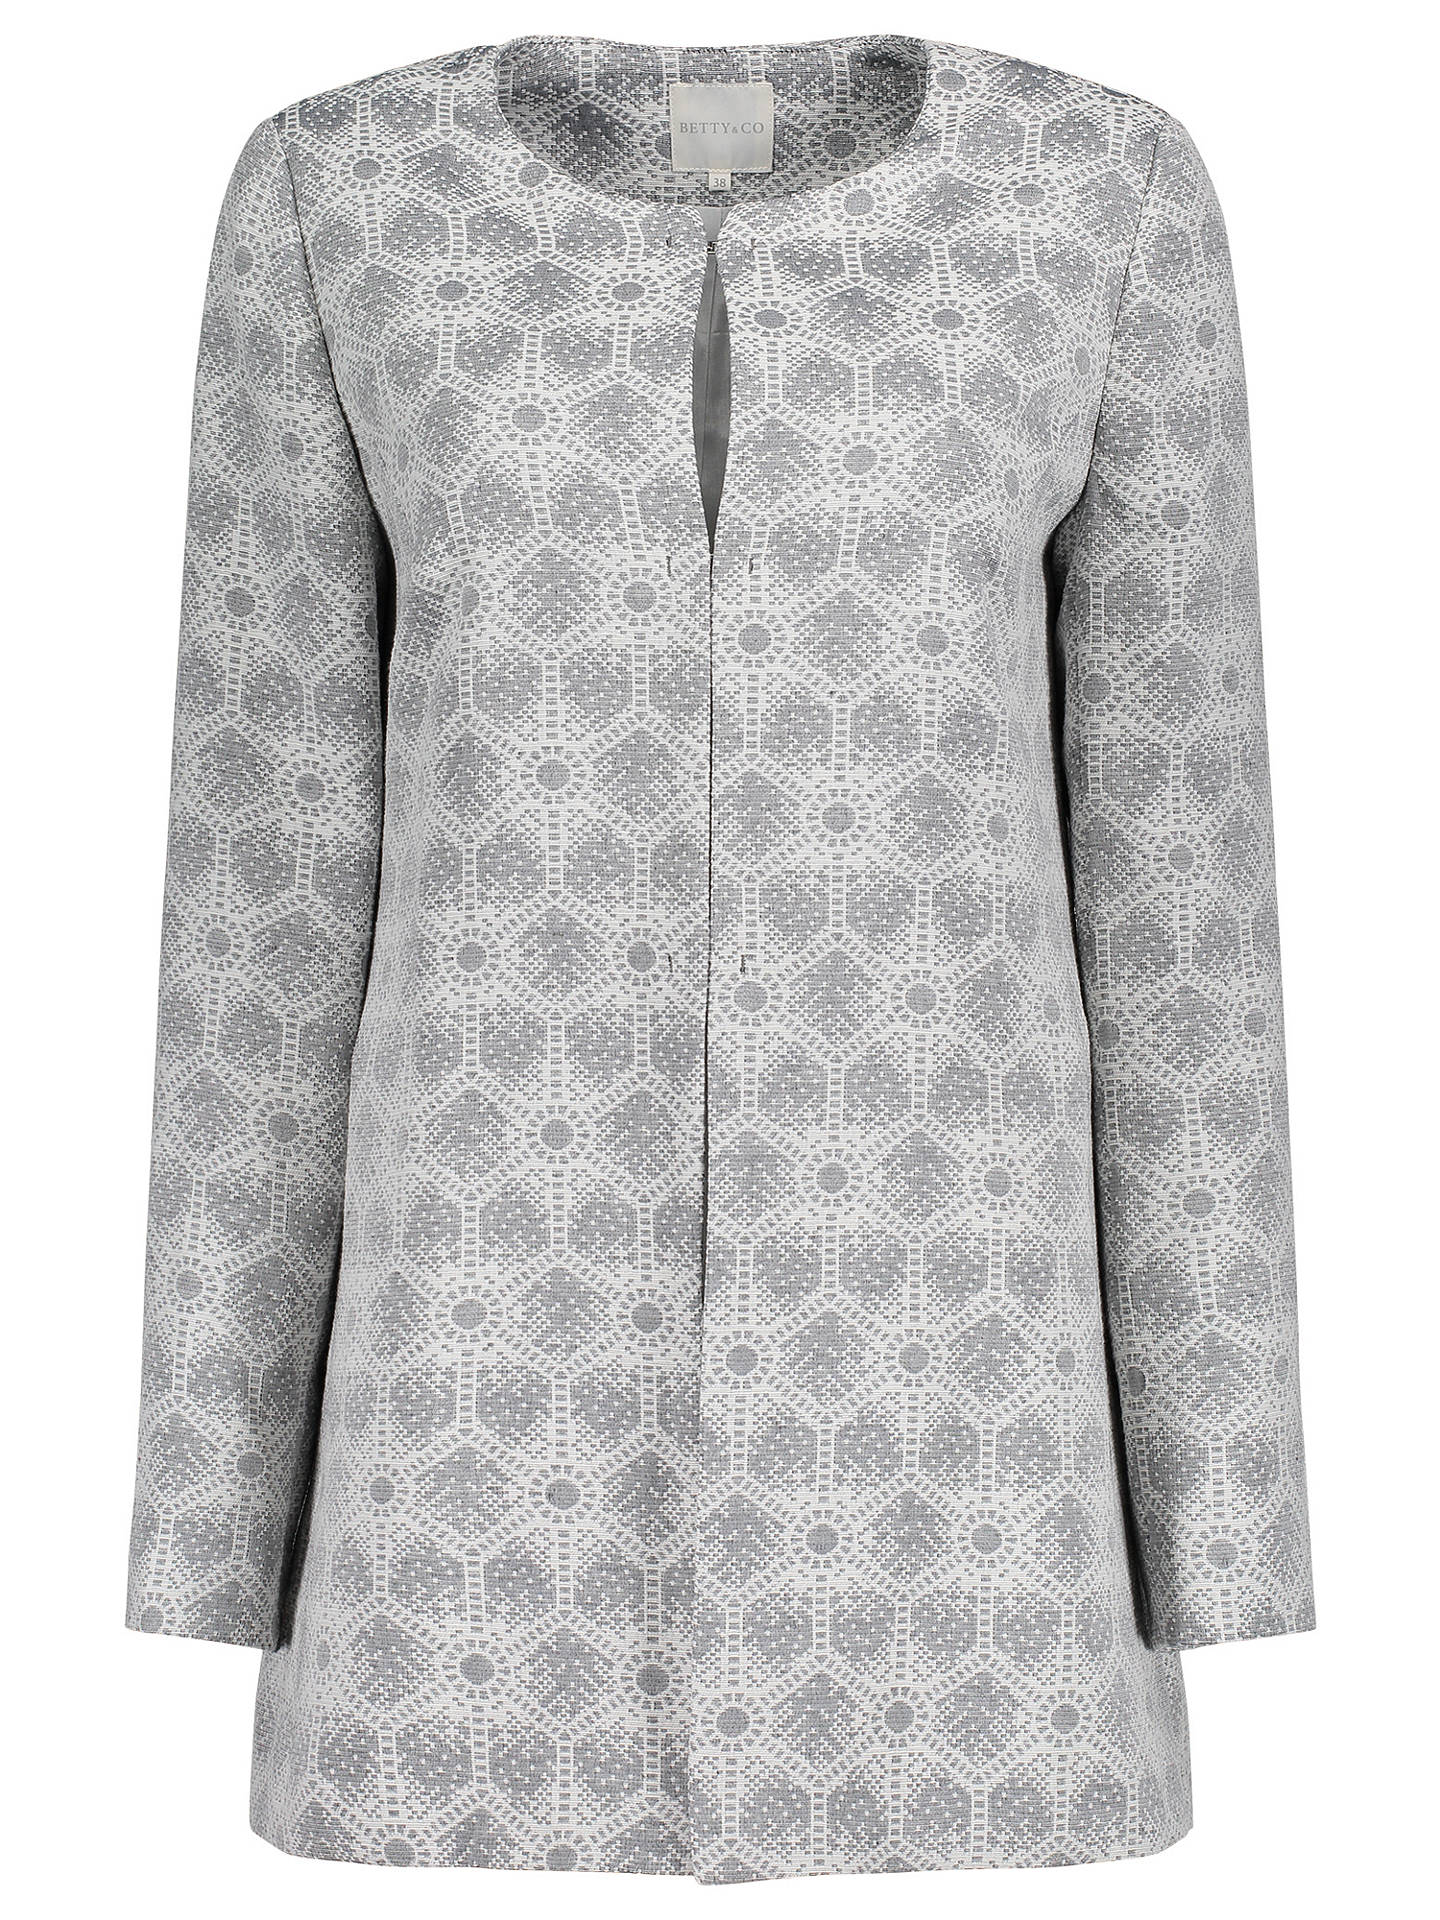 BuyBetty & Co. Tapestry Weave Jacket, Grey/Cream, 10 Online at johnlewis.com